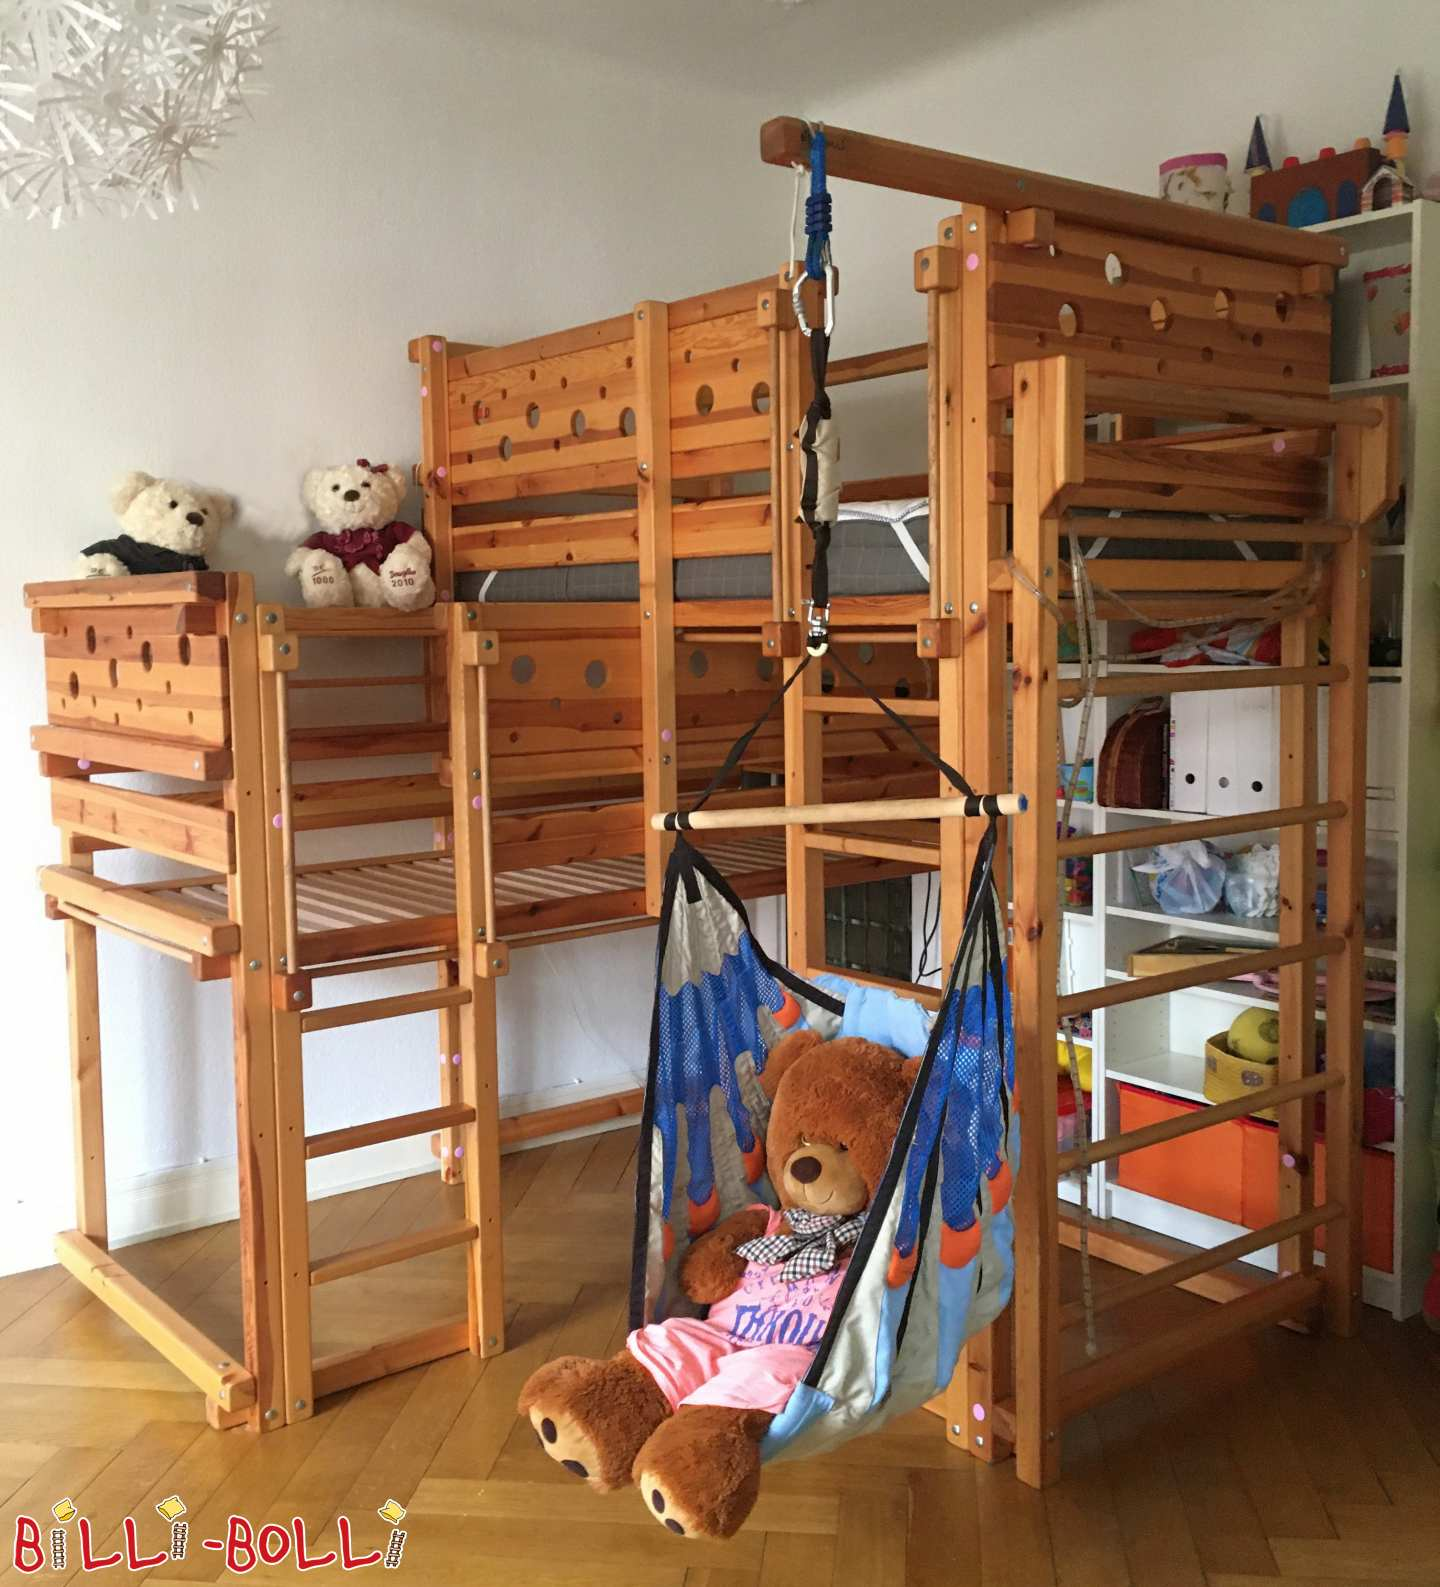 Both-top bed with mouse boards in Hamburg (second hand kids' furniture)